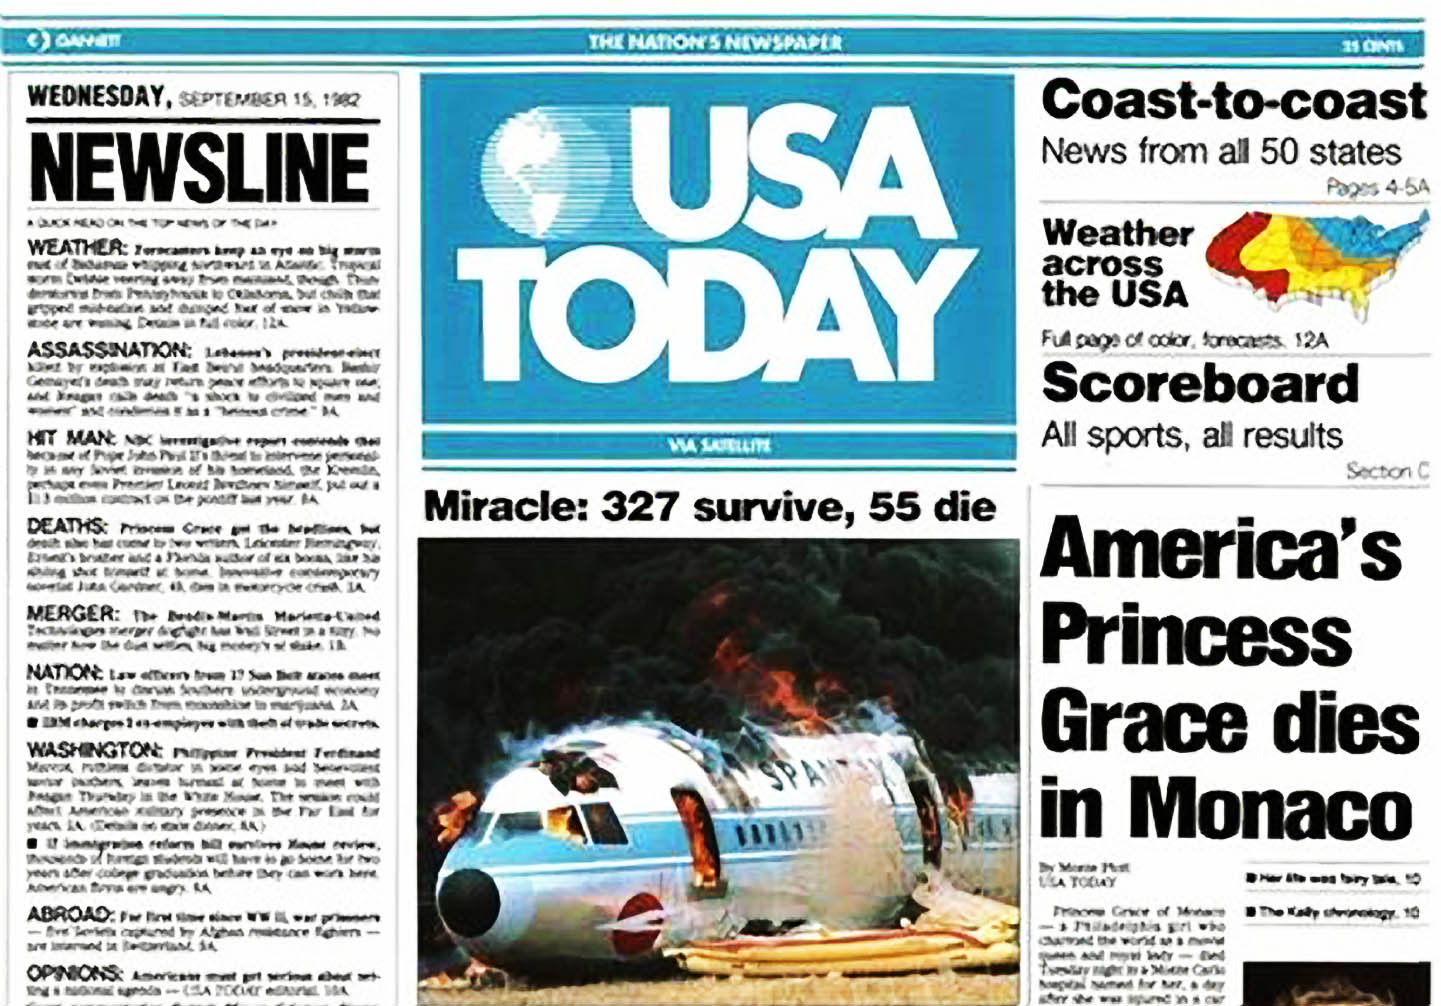 USA-Today-1982bEsmall-jpg